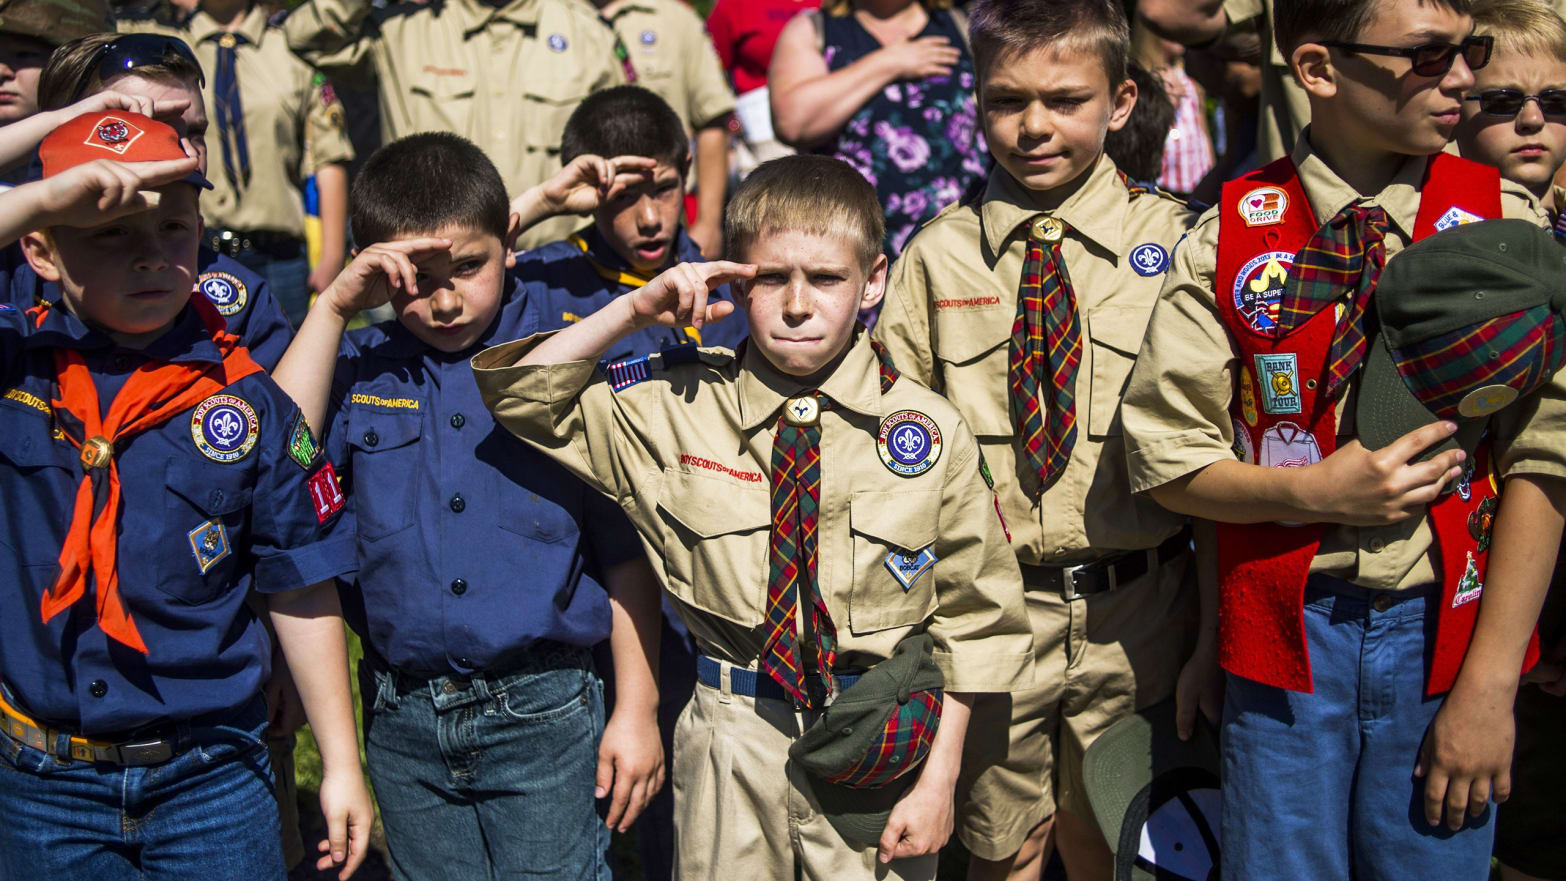 Cub Scout Booted From Den For Asking Lawmaker About Past